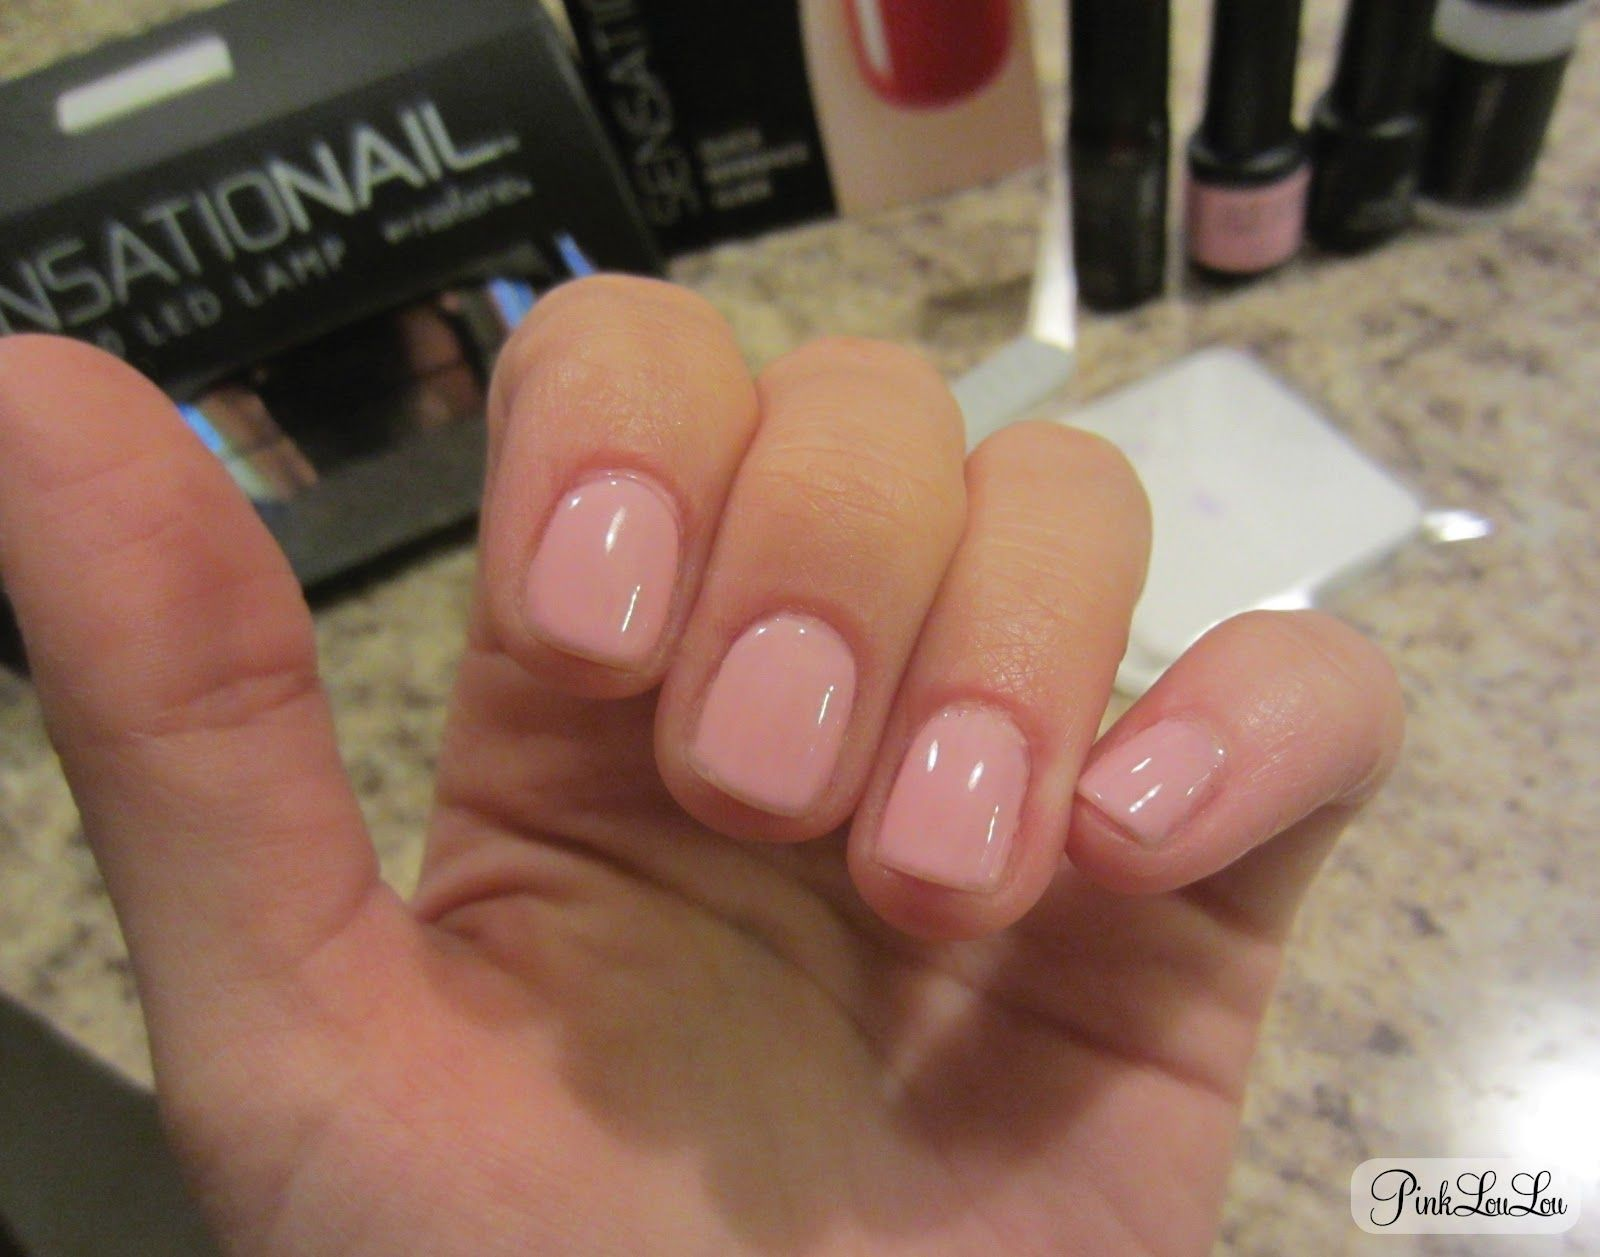 Sensationail At Home Gel Manicure Review Via Pinkloulou In